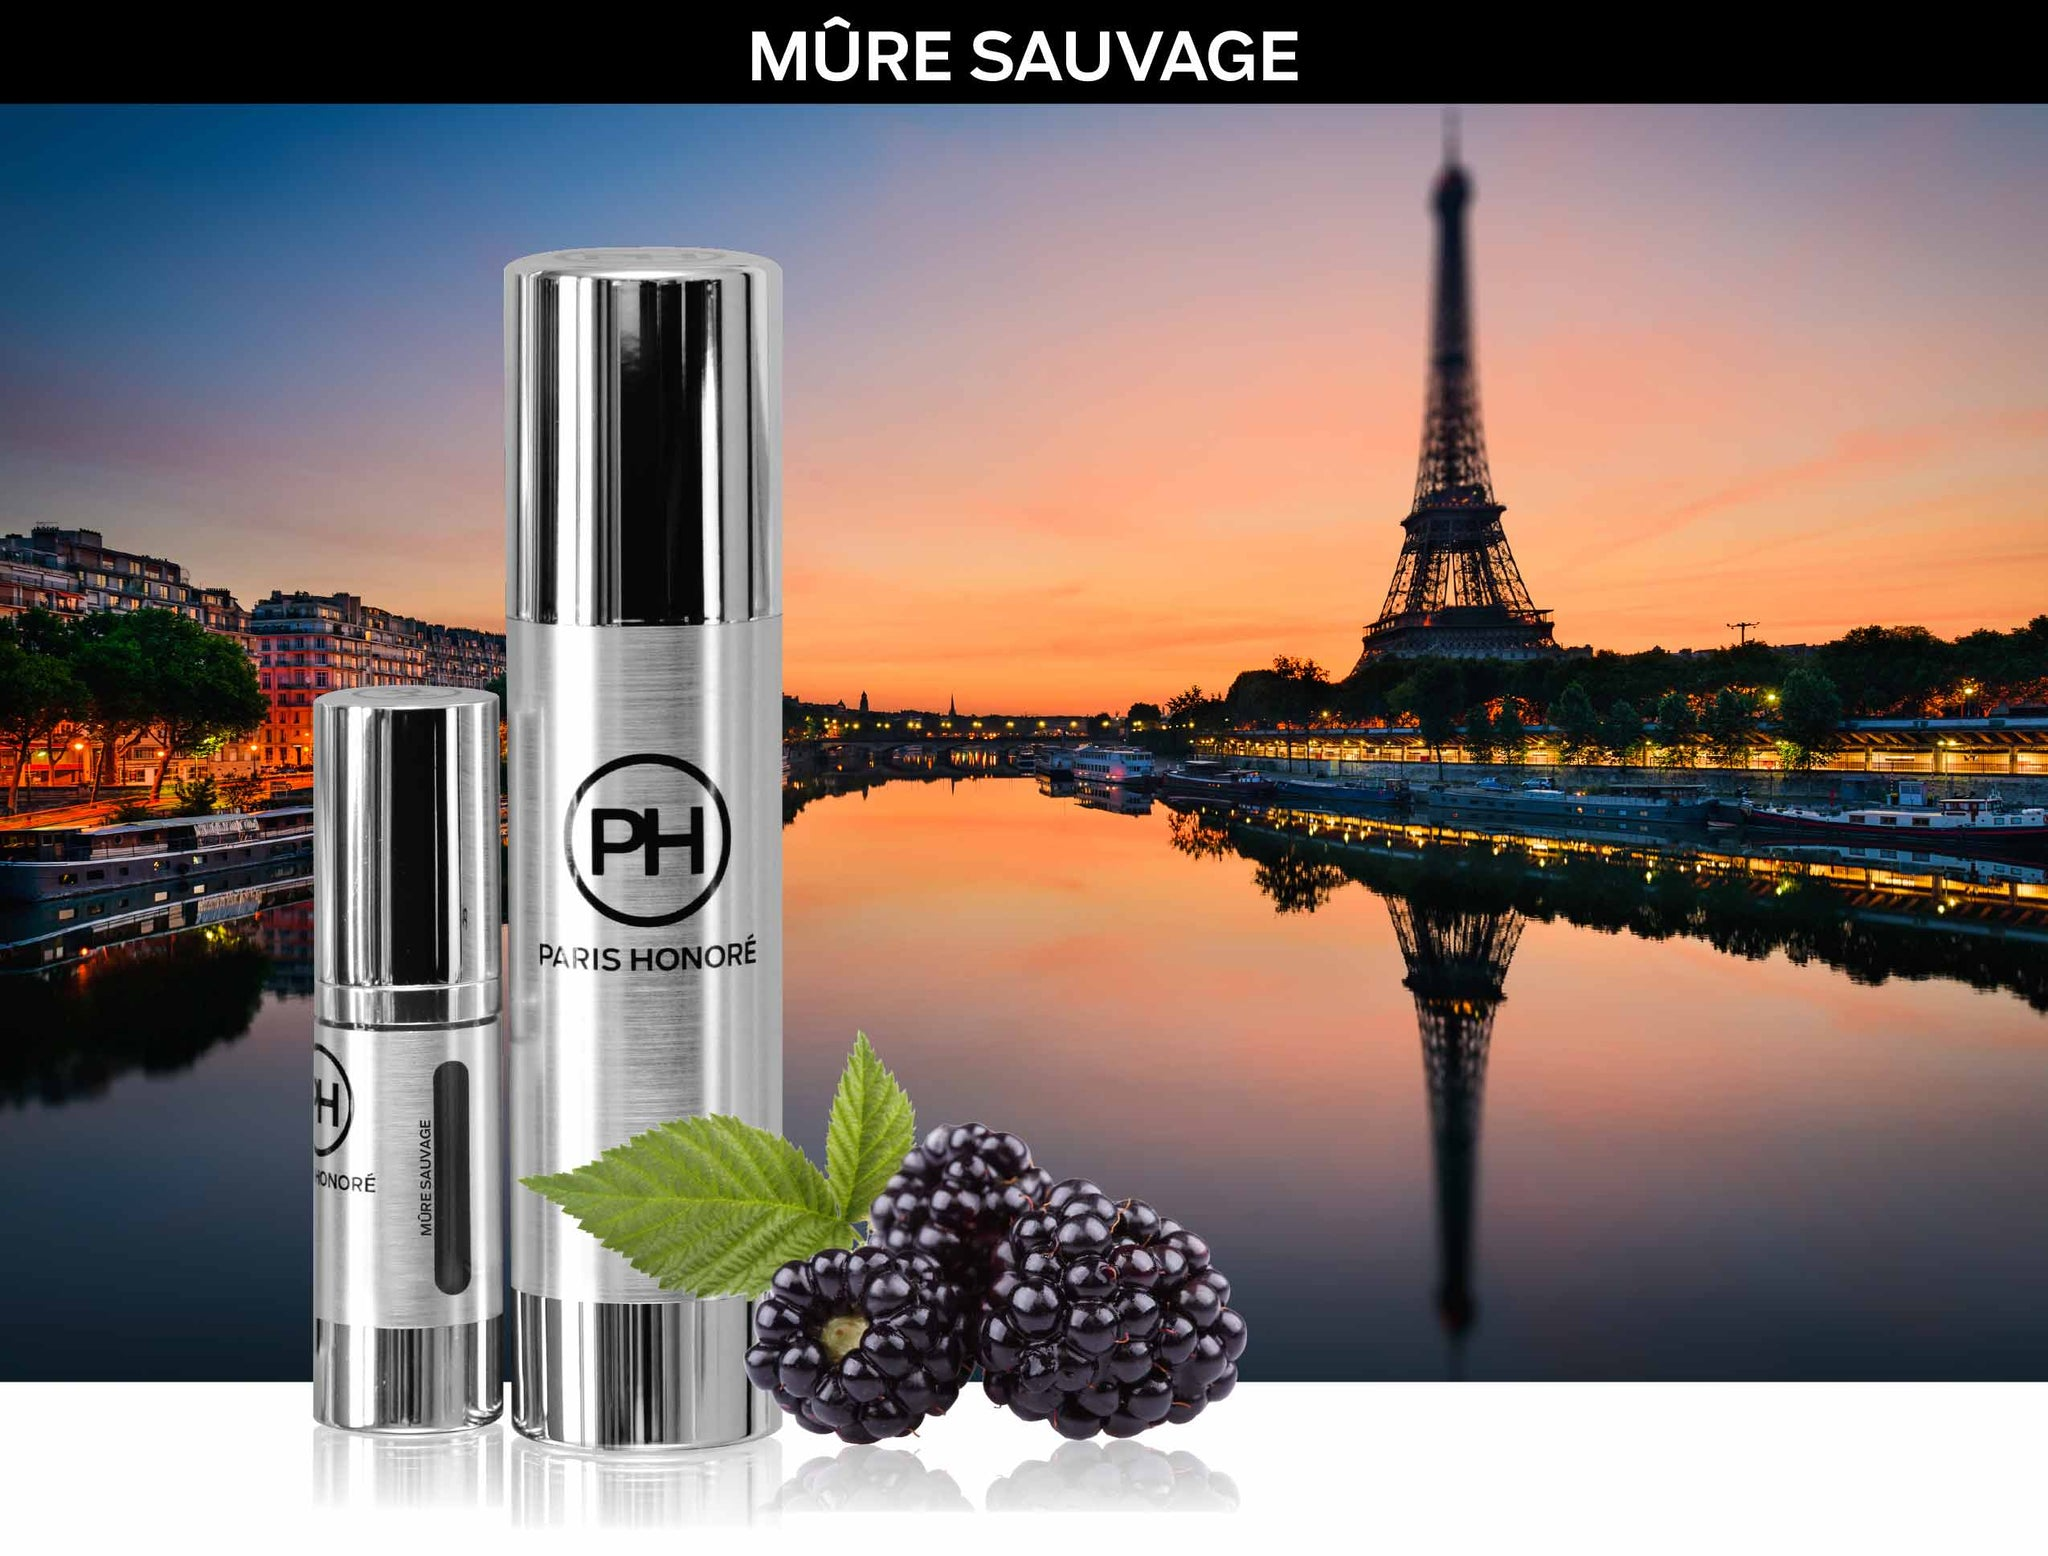 2016 LIMITED EDITION LUXE FEATURED FRAGRANCE NO. 3: MÛRE SAUVAGE